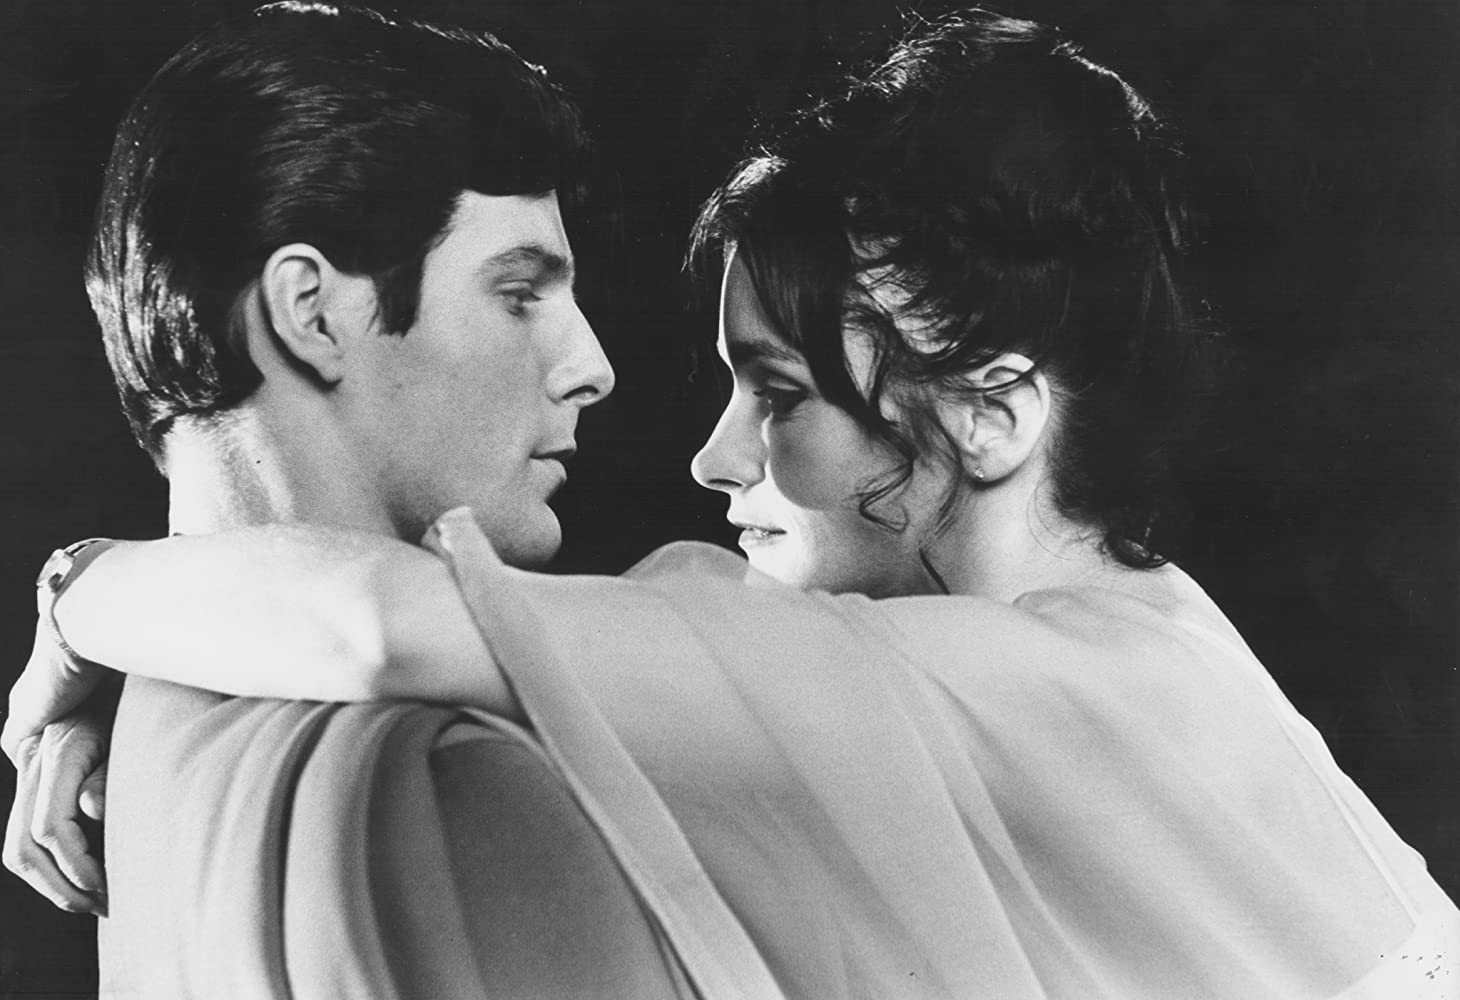 Christopher Reeve and Margot Kidder in Superman (1978)